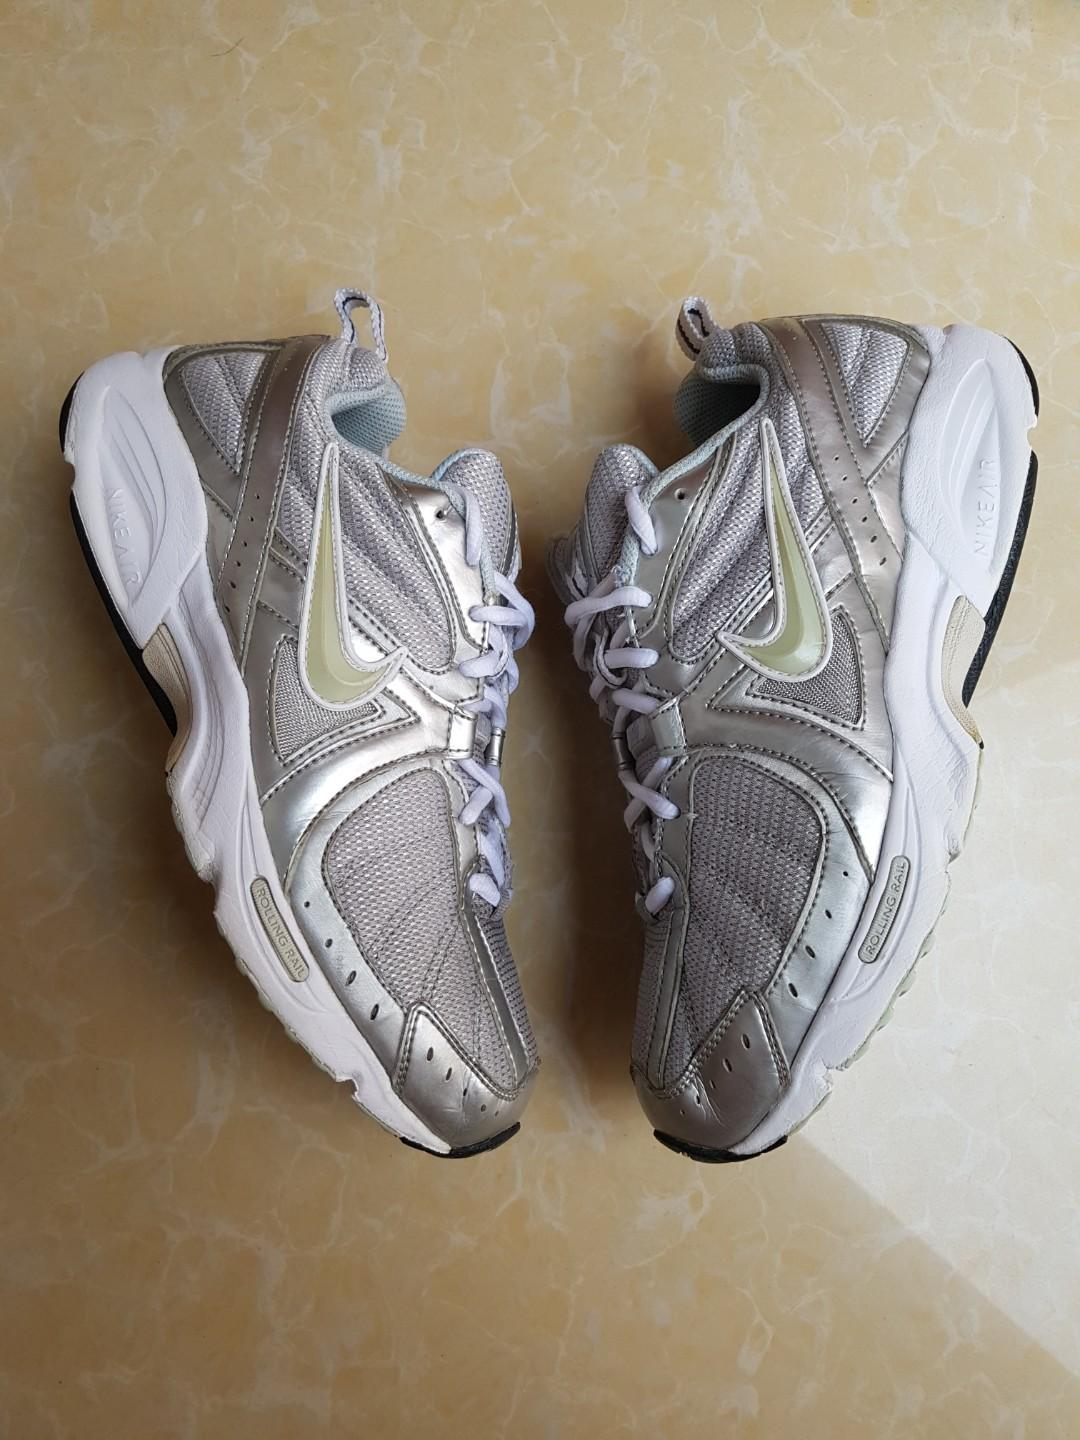 charla Restricción corrupción  nike air vitality walk rolling rail authentic original, Women's Fashion,  Shoes, Sneakers on Carousell